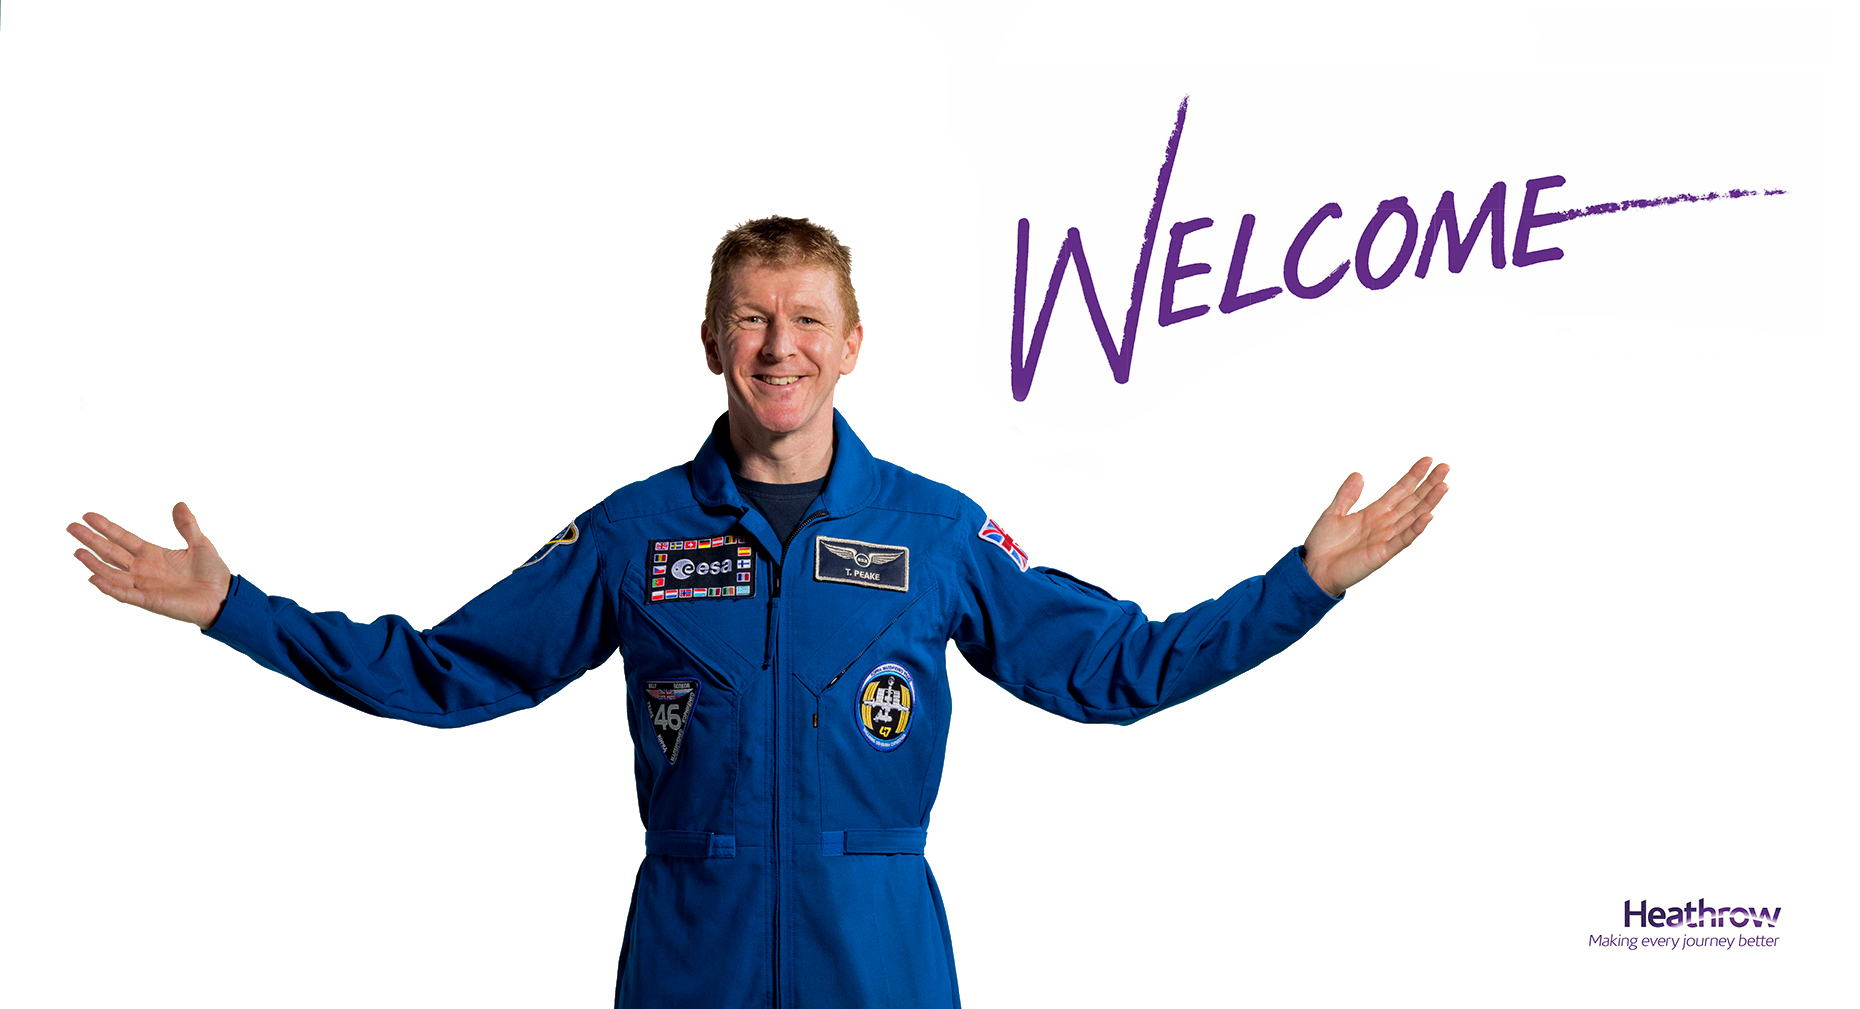 Tim-Peake-Heathrow-web-size